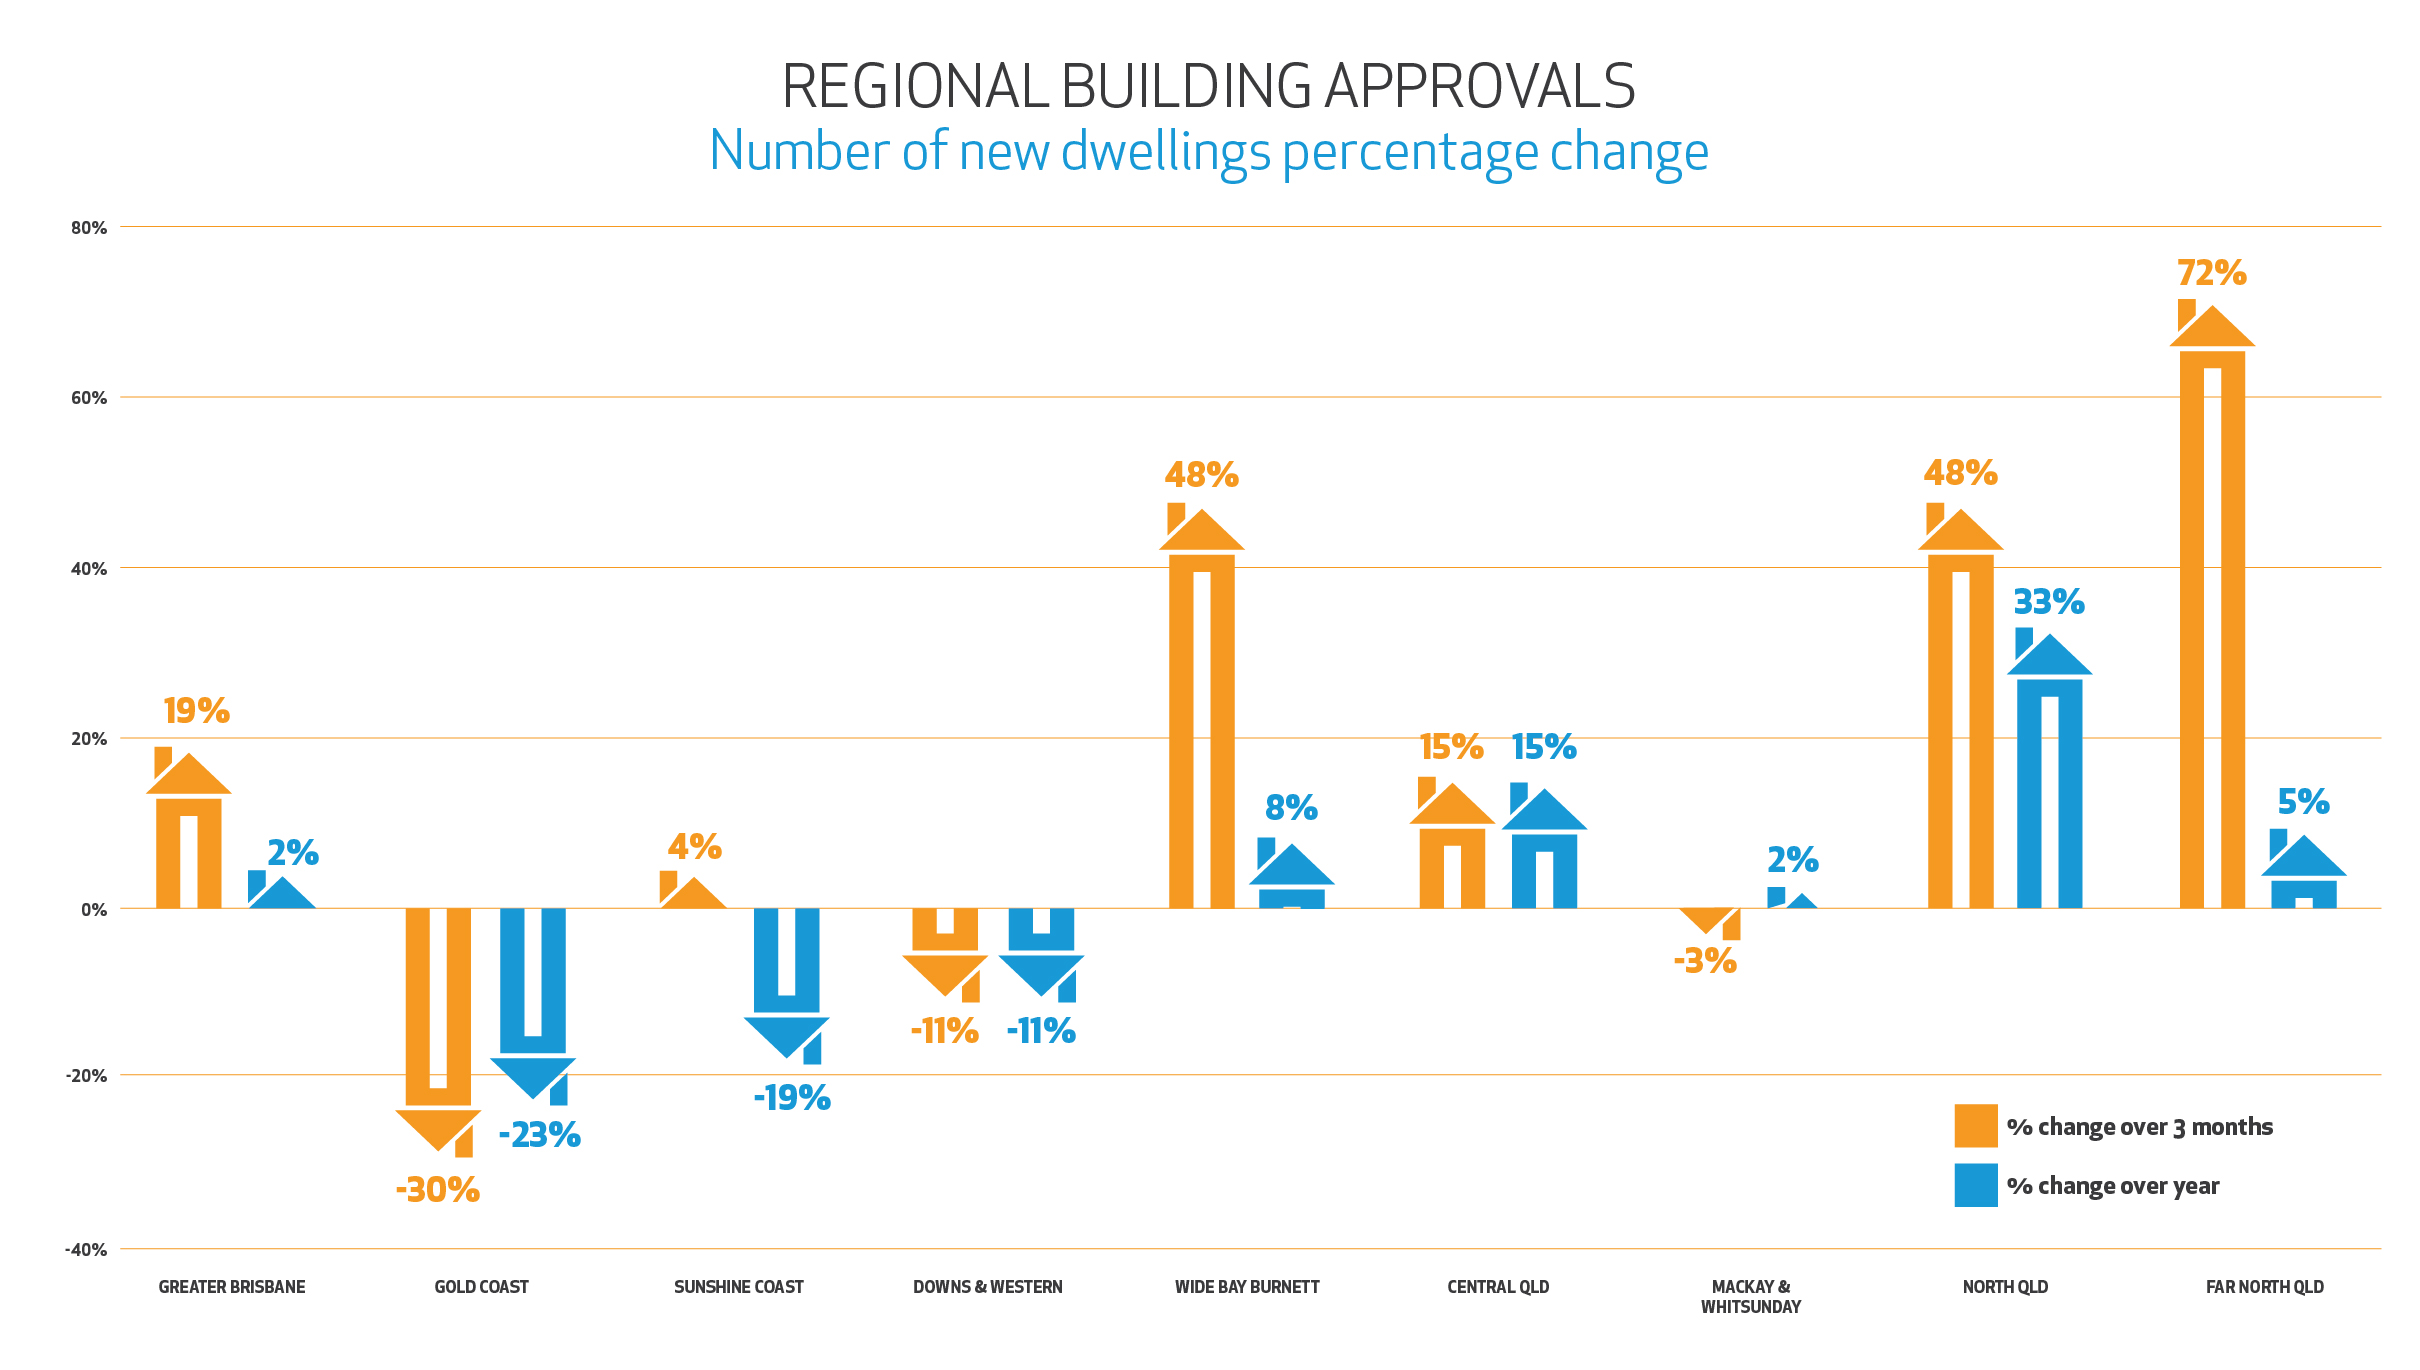 Regional Building Approvals September 2020